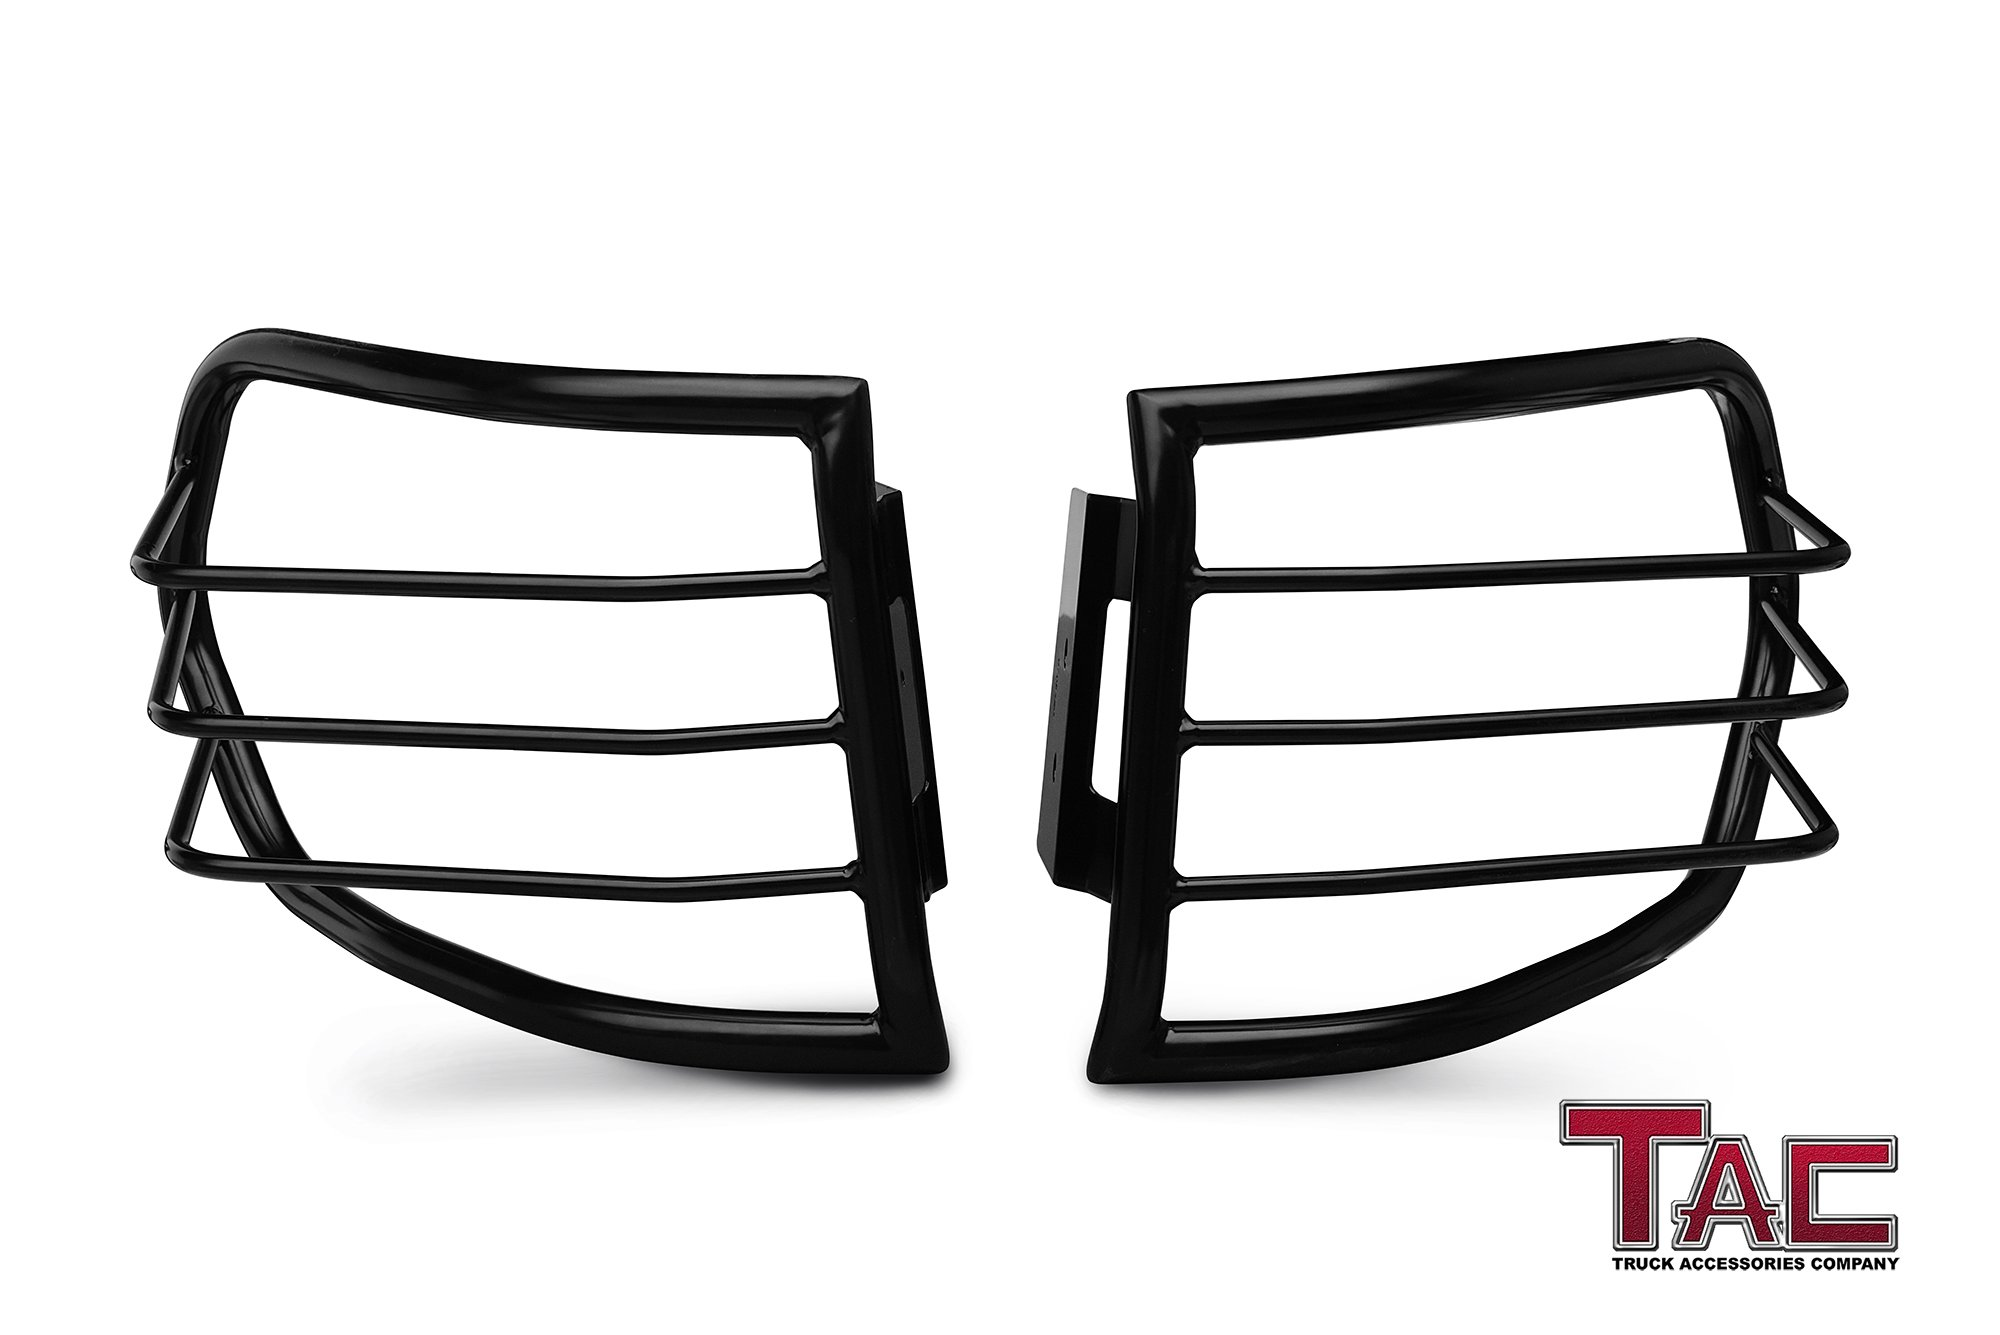 TAC Tail Rear Light Guards Cover Protector Fit 2007-2014 Toyota FJ Cruiser TLG Black Taillight – 1 Pair